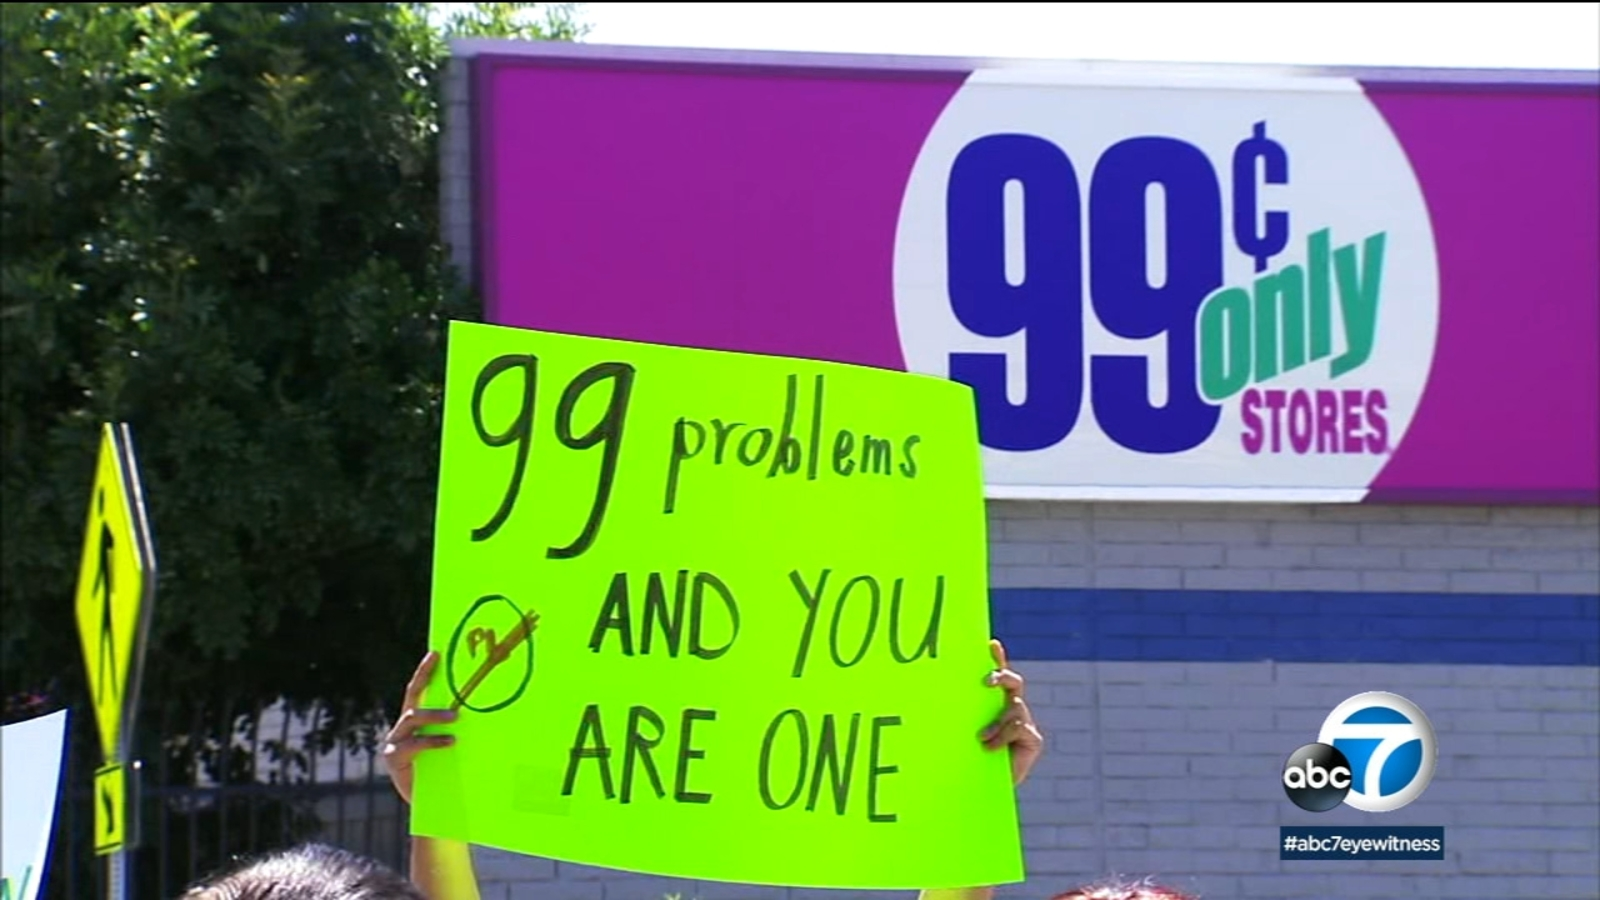 99 Cents Only stores carry products with toxic chemicals, protesters say